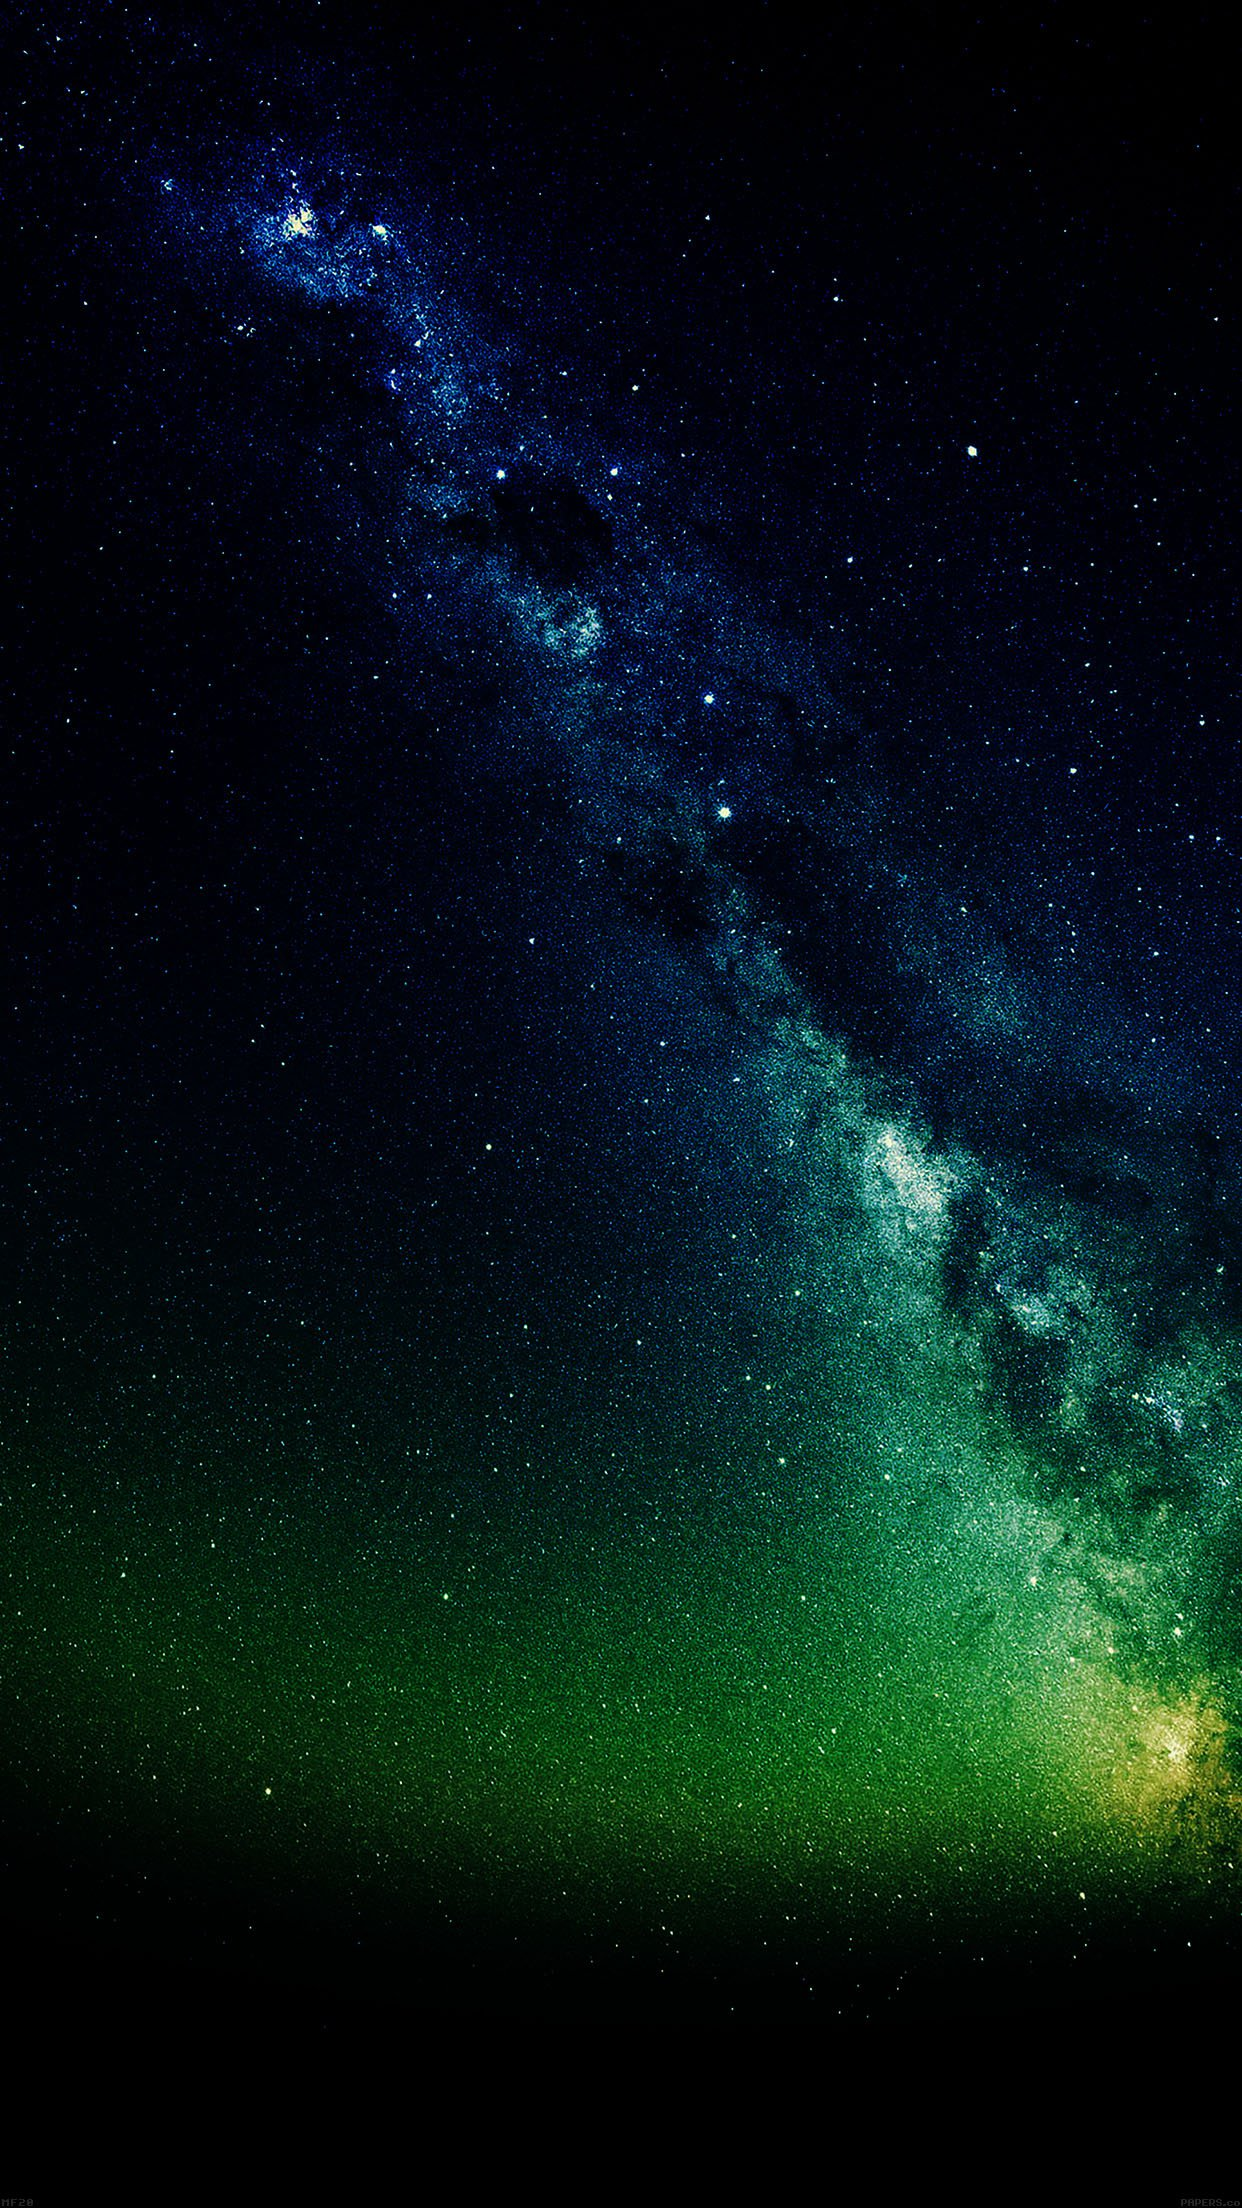 Expansive space wallpapers for iphone ipad and desktop - Dark space hd ...